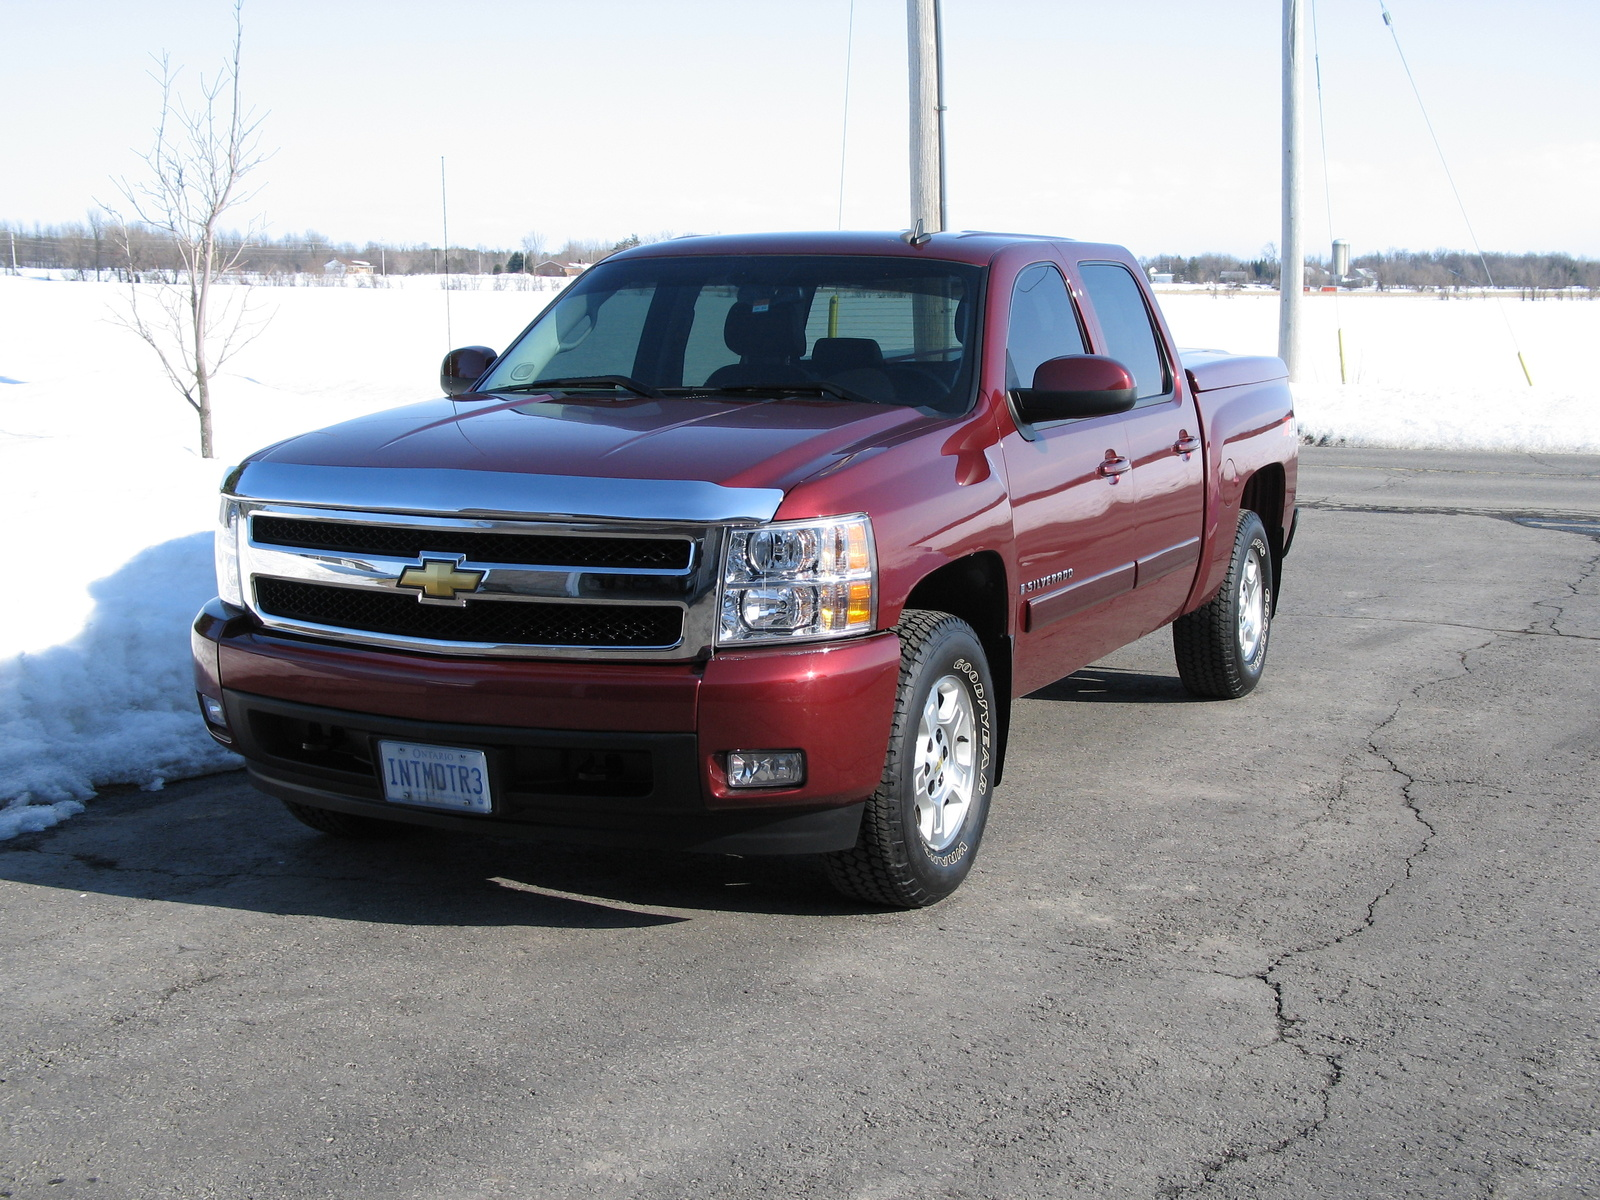 2007 chevrolet silverado 1500 pictures cargurus. Cars Review. Best American Auto & Cars Review